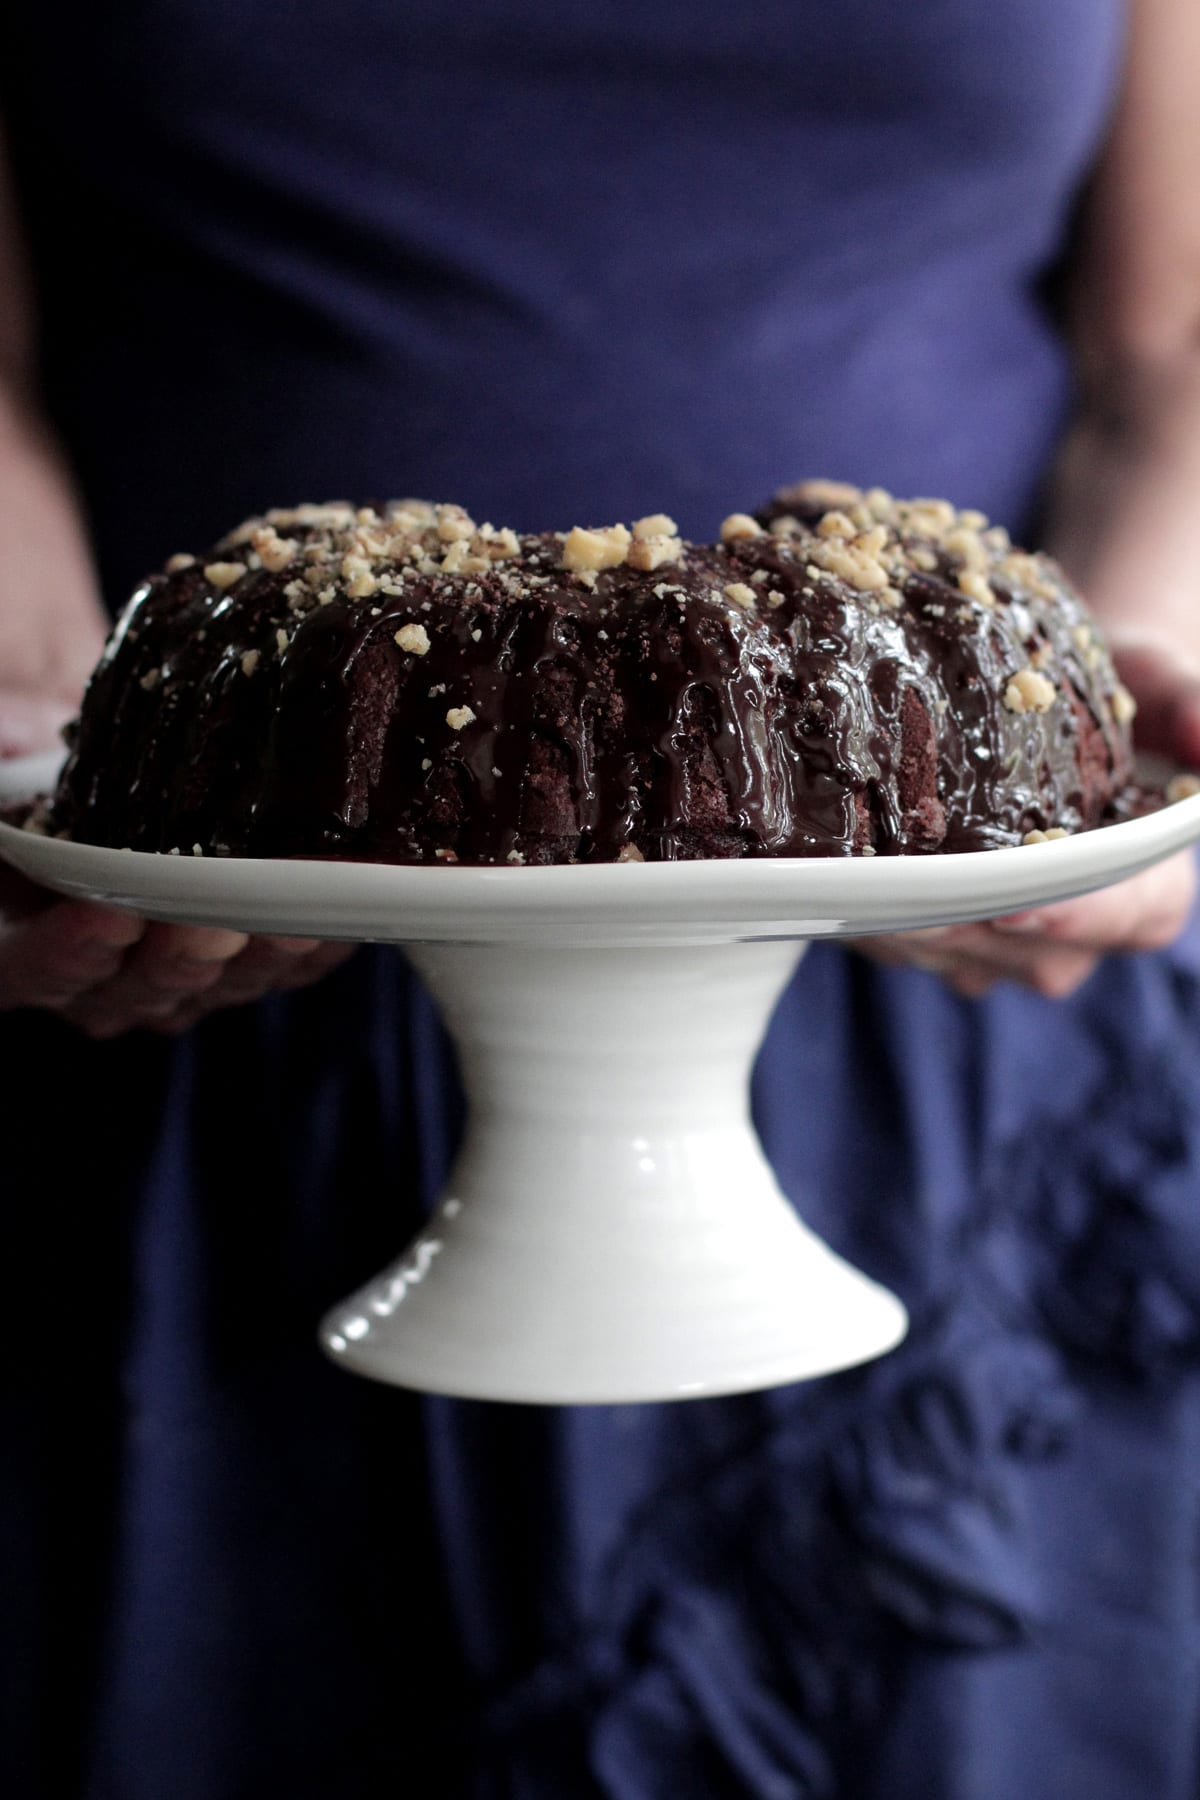 Chocolate Bundt Cake with Zucchini and Walnuts + A Baking Video